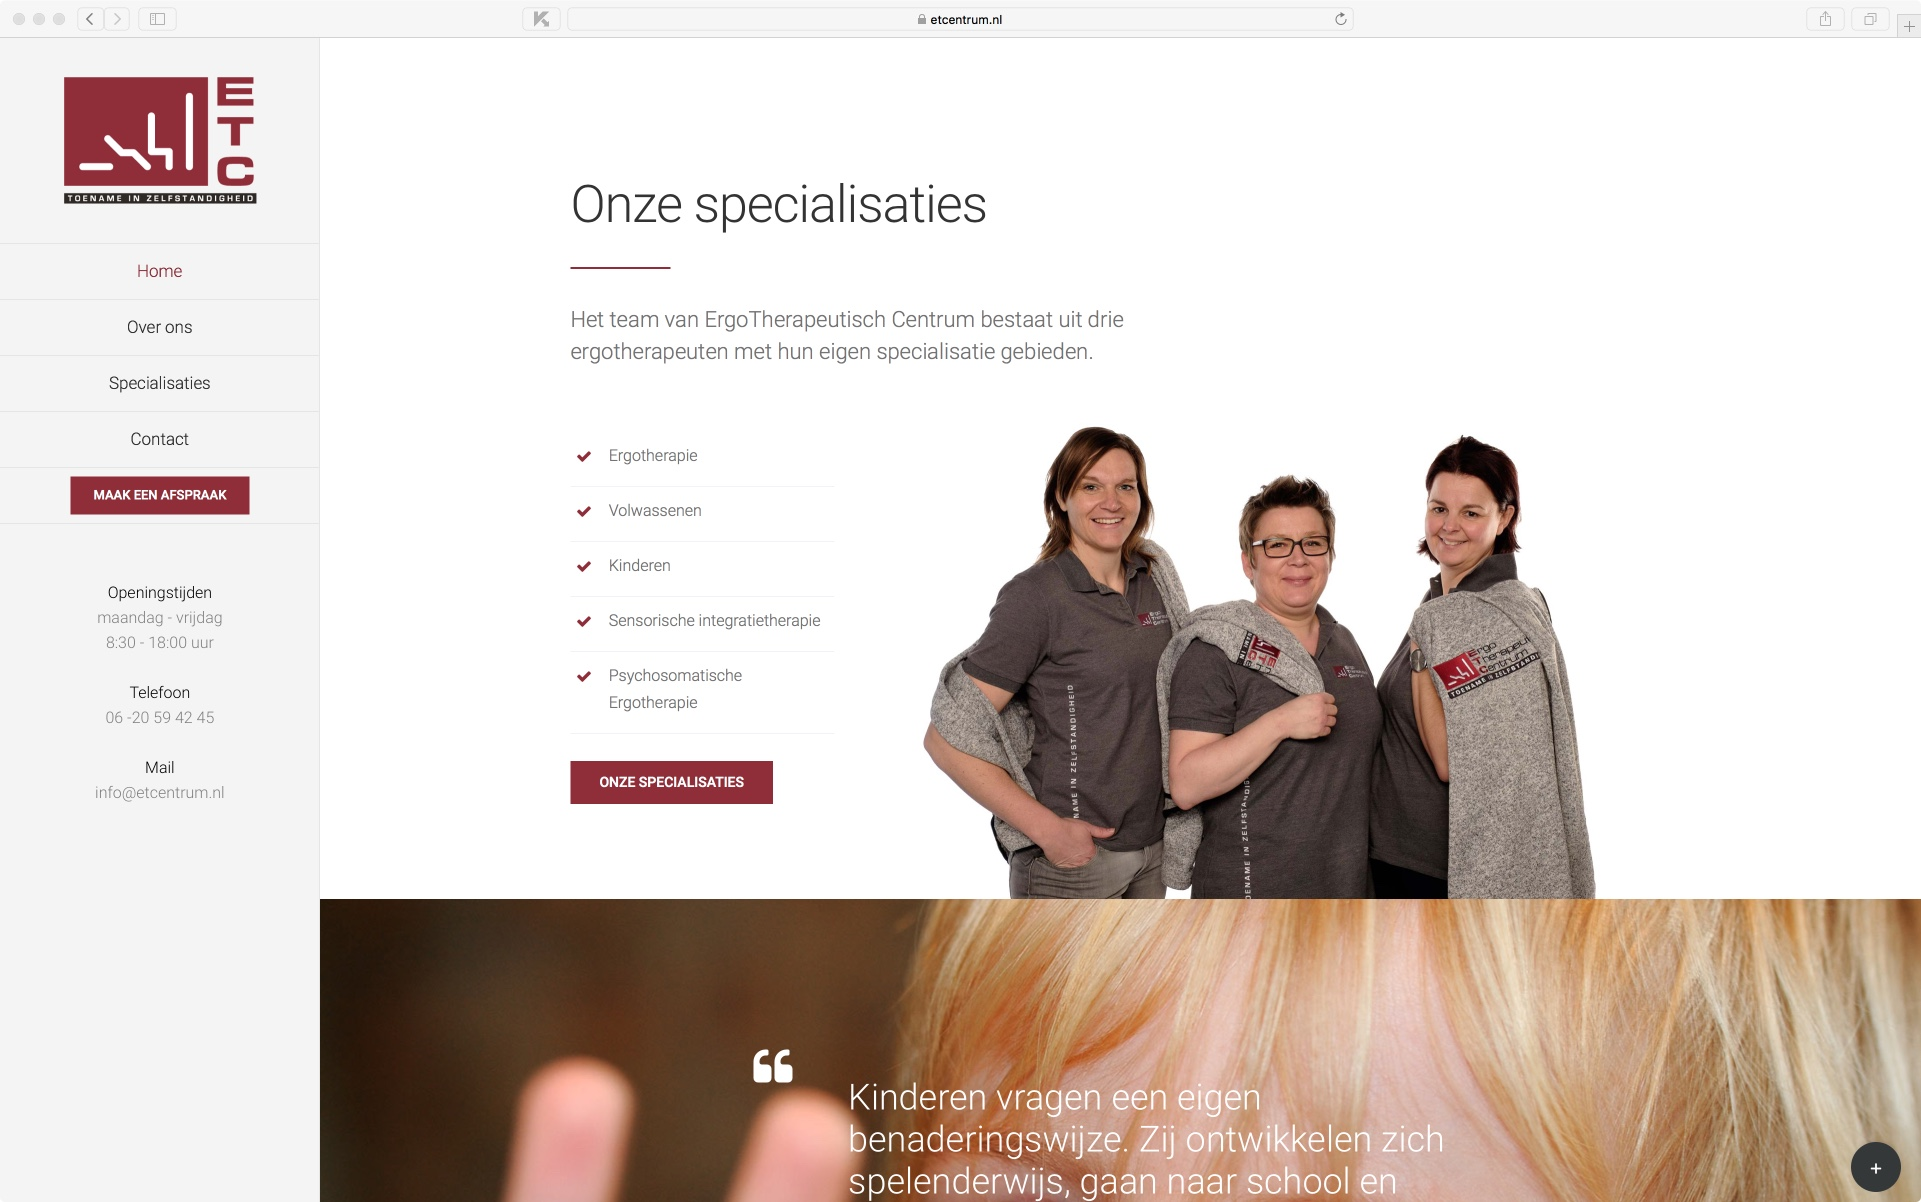 ETCentrum website – Onze specialisaties